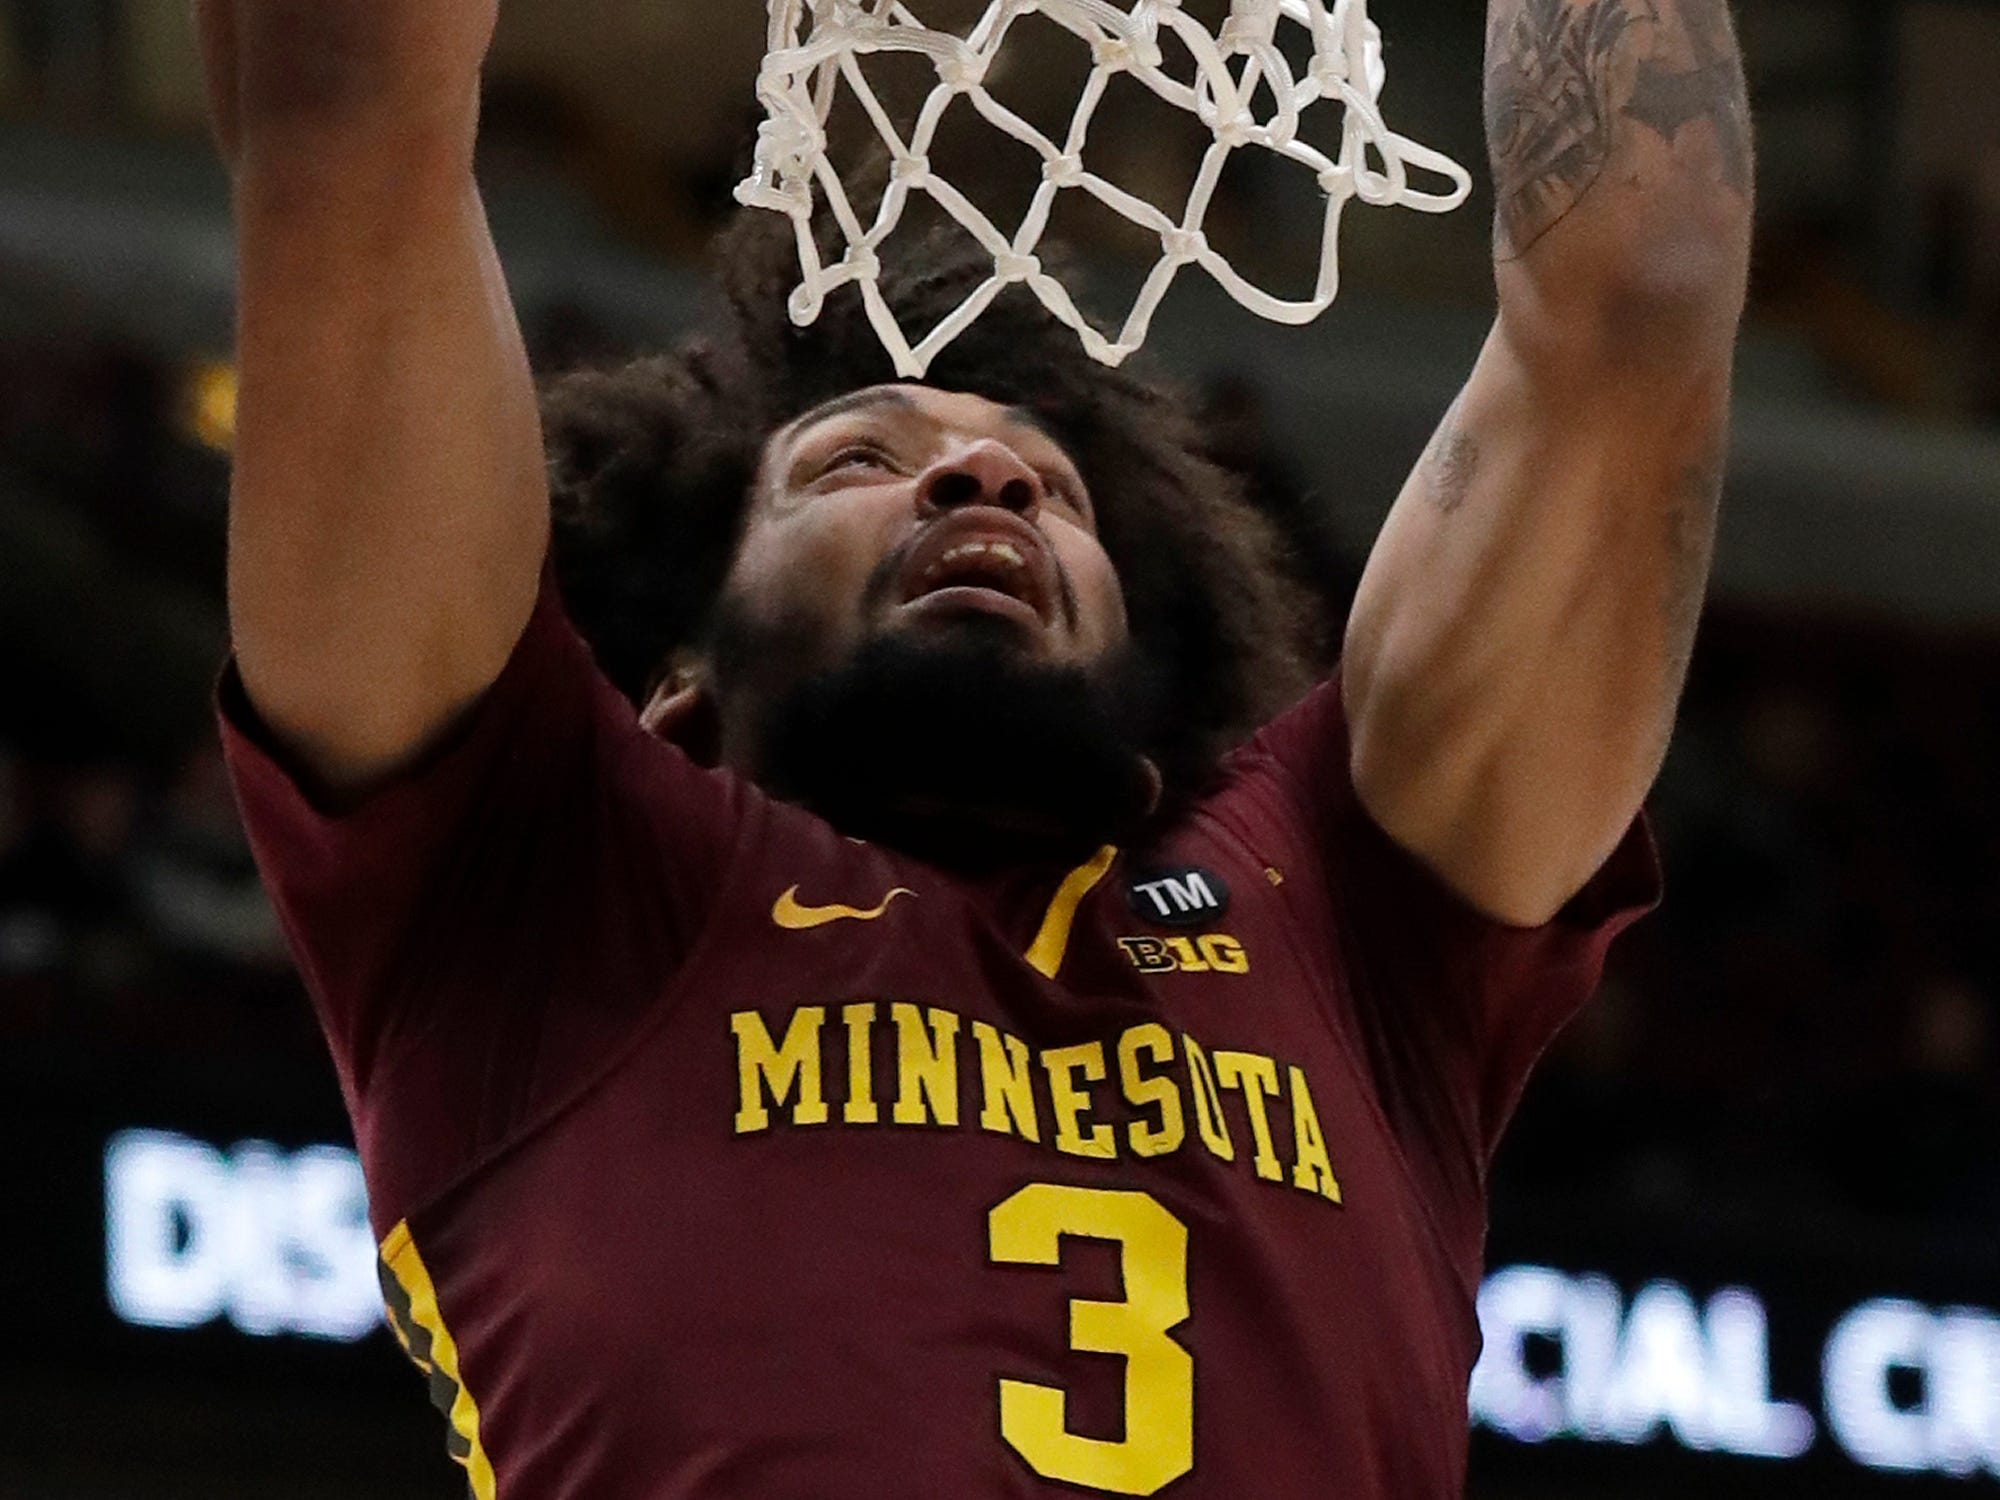 Minnesota's Jordan Murphy dunks during the first half against Purdue in the quarterfinals of the Big Ten Conference tournament, Friday, March 15, 2019, in Chicago.